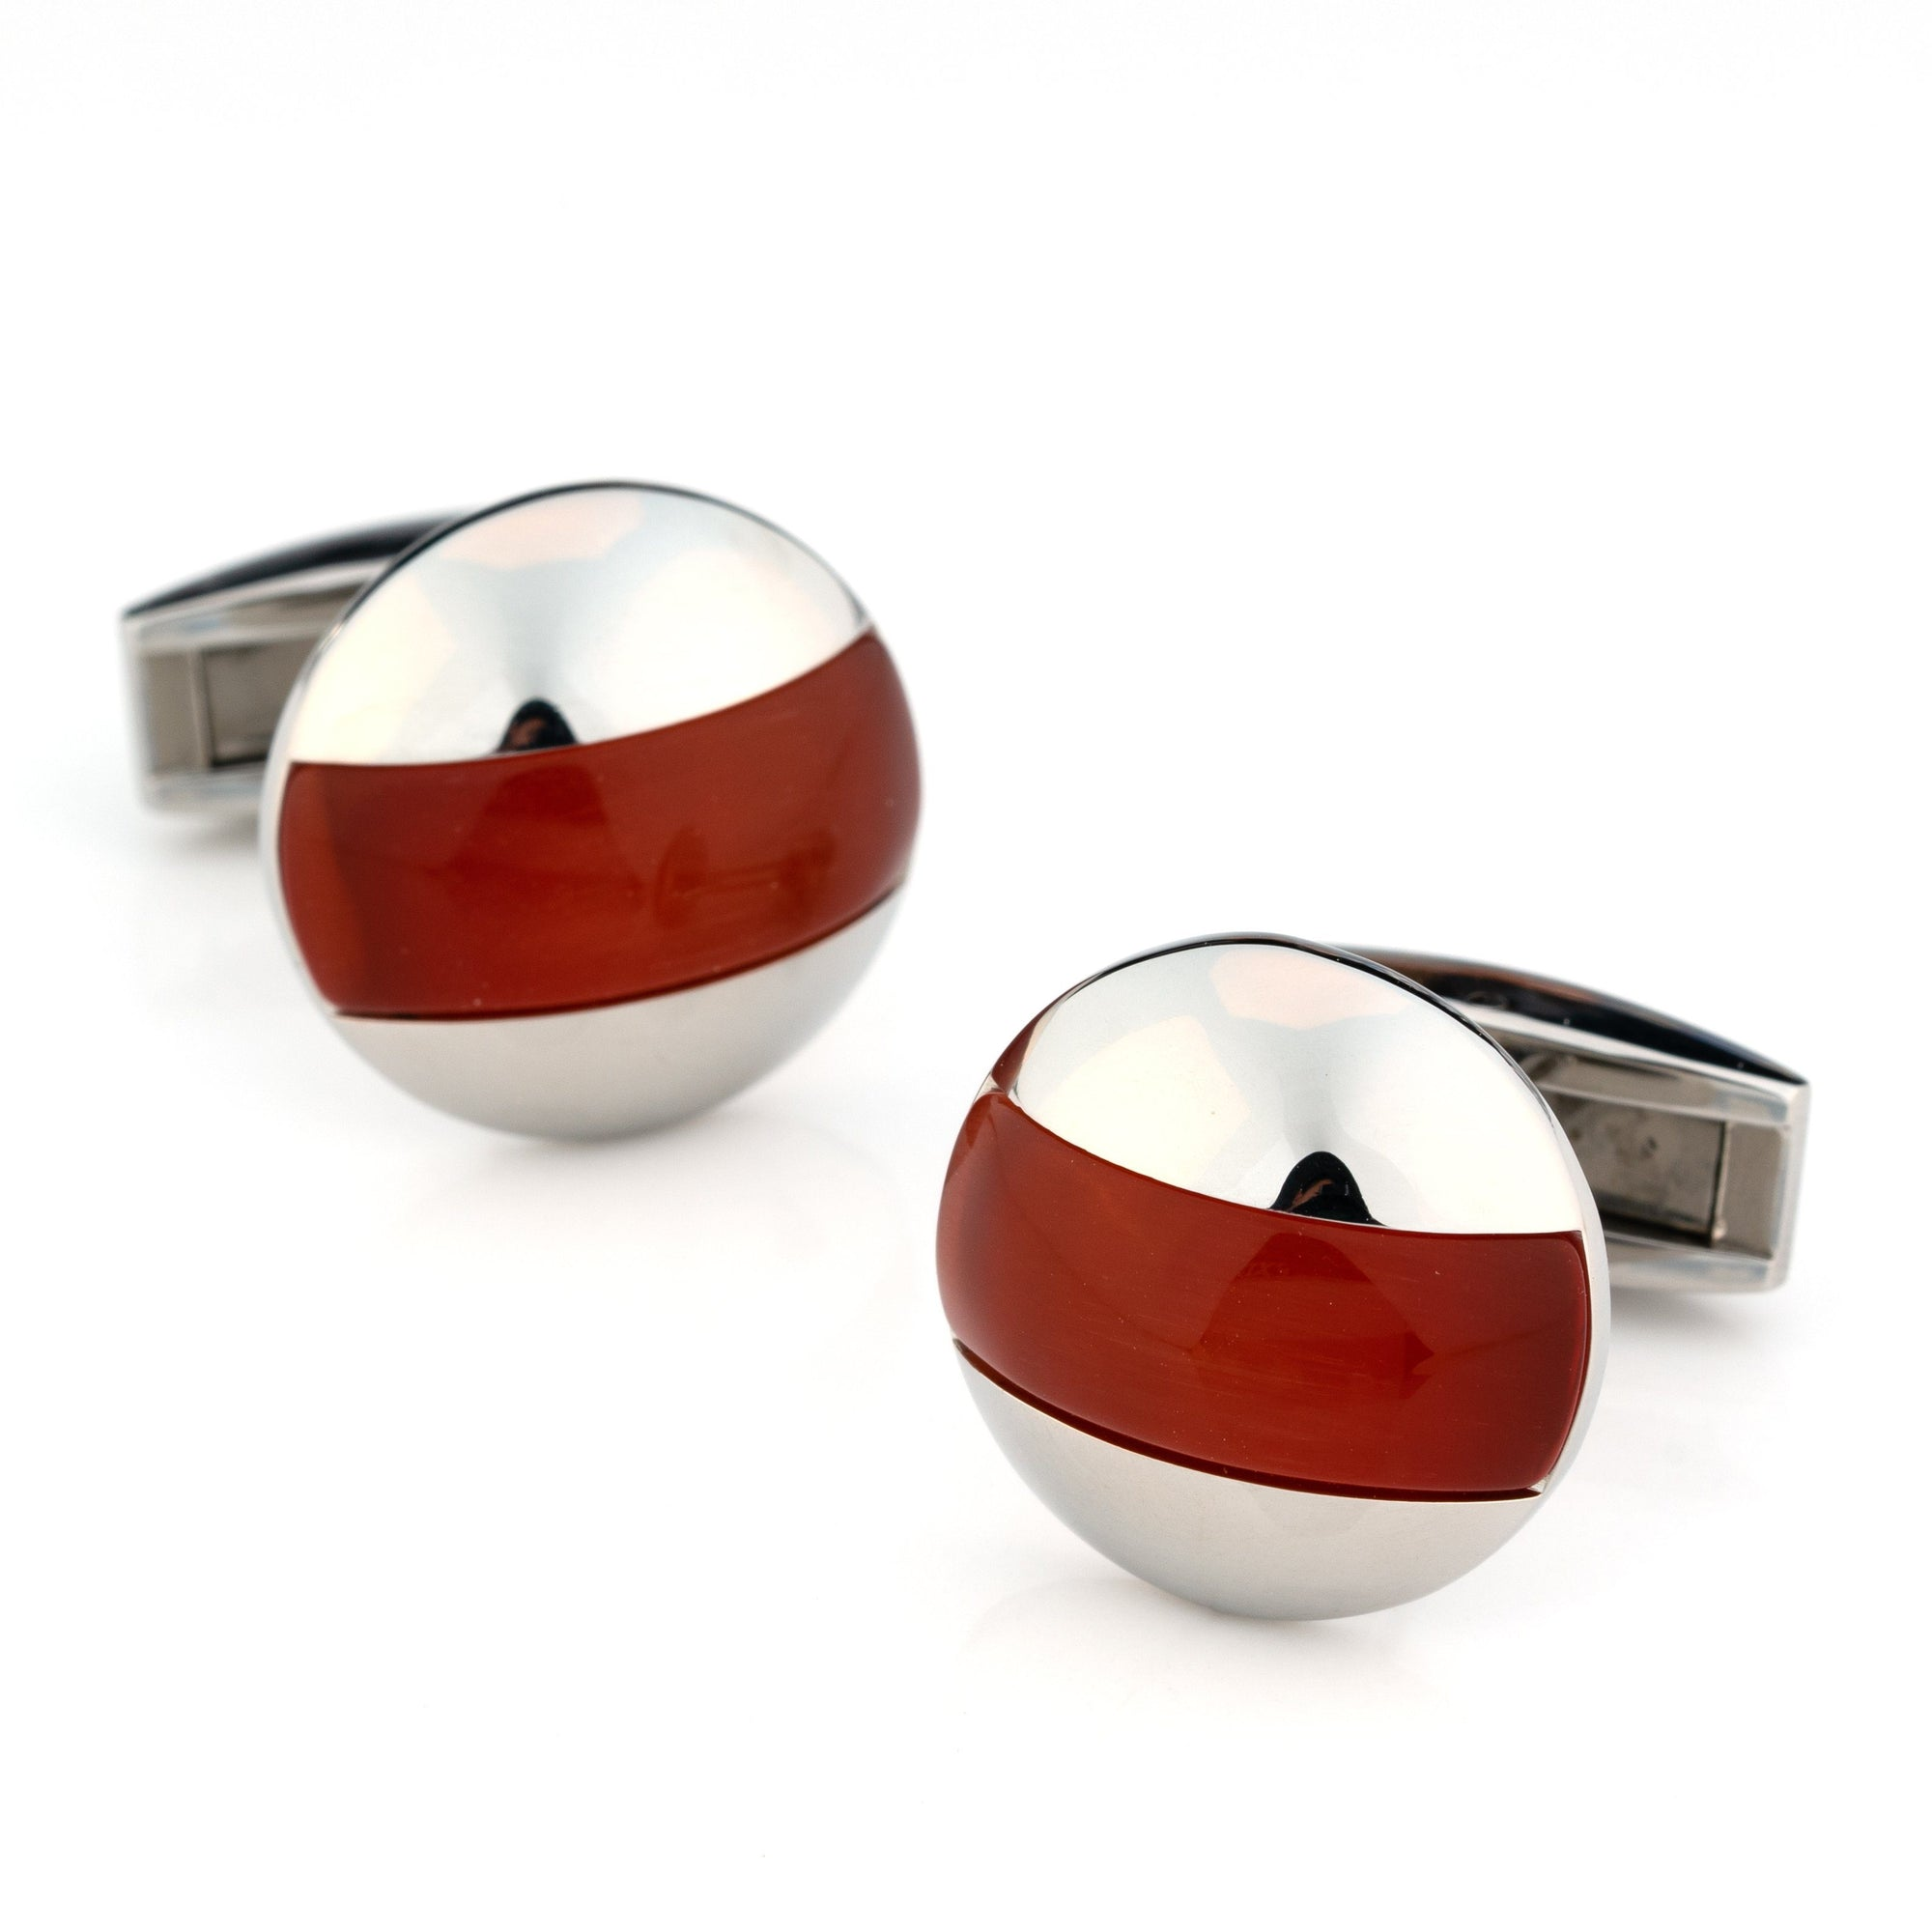 Elliptical Red Cat Eye Cufflinks Classic & Modern Cufflinks Clinks Australia